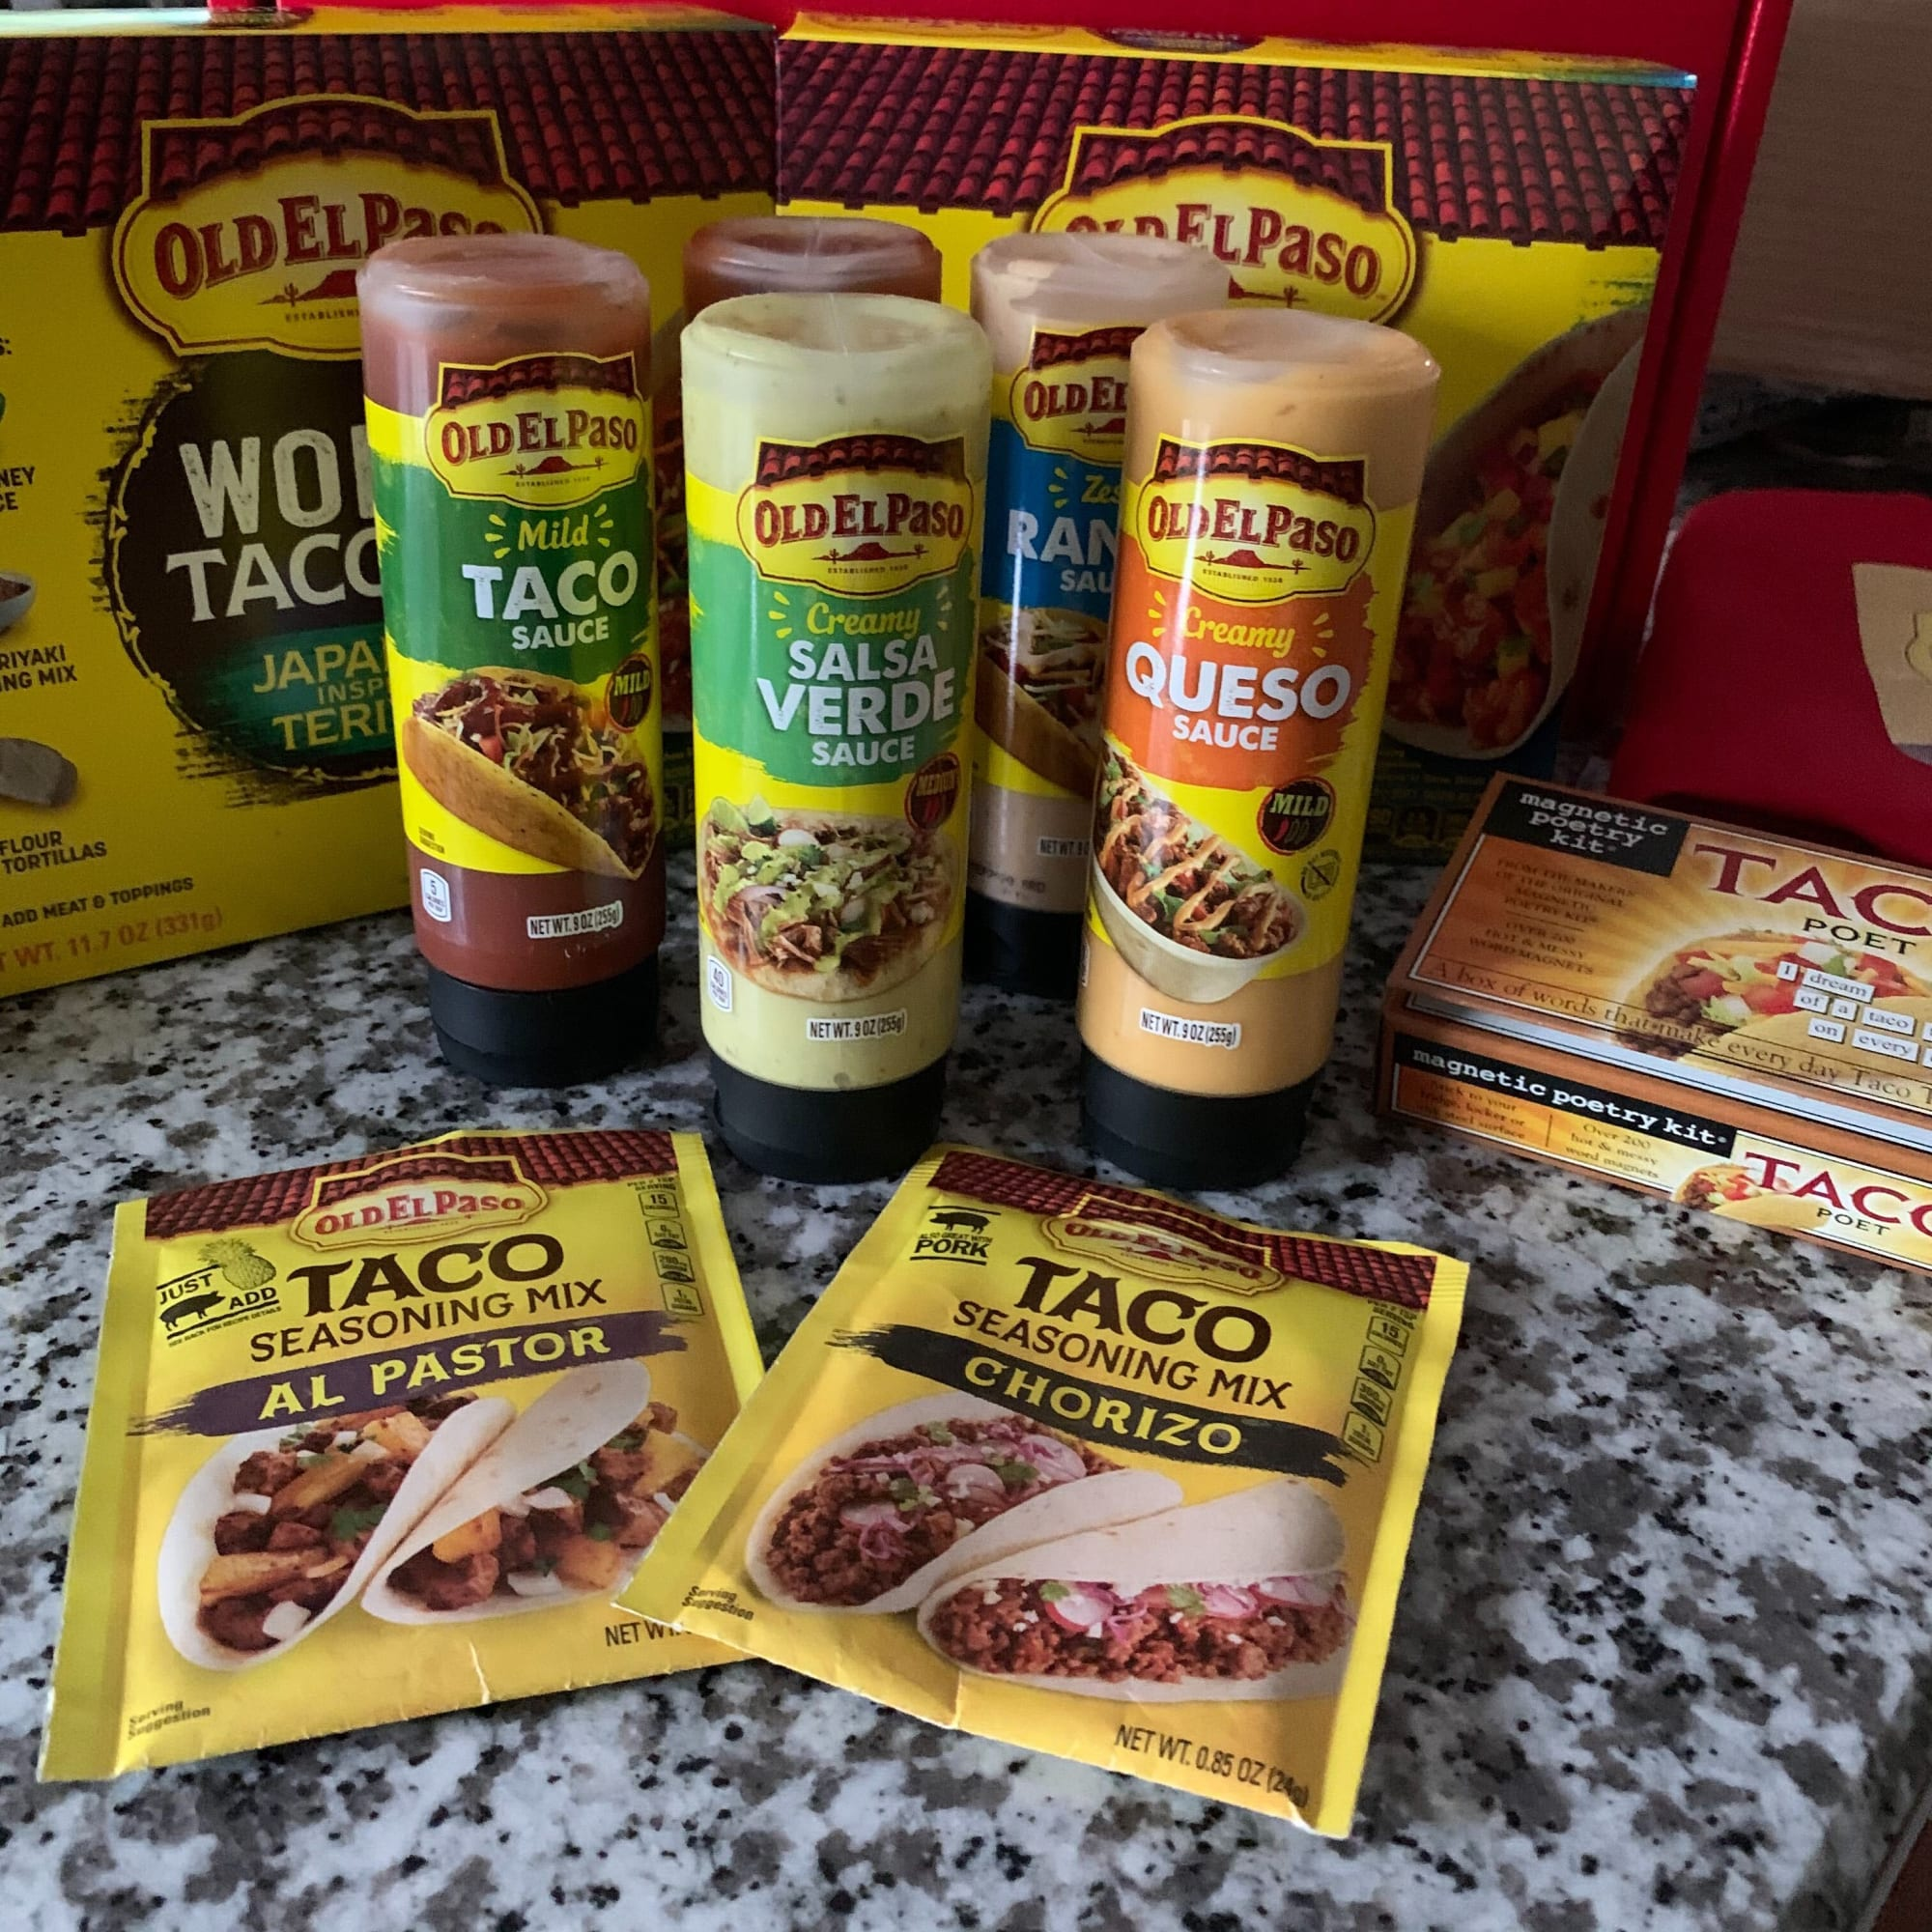 Taco Tuesday Gets Kicked Up A Notch With The Help Of Old El Paso